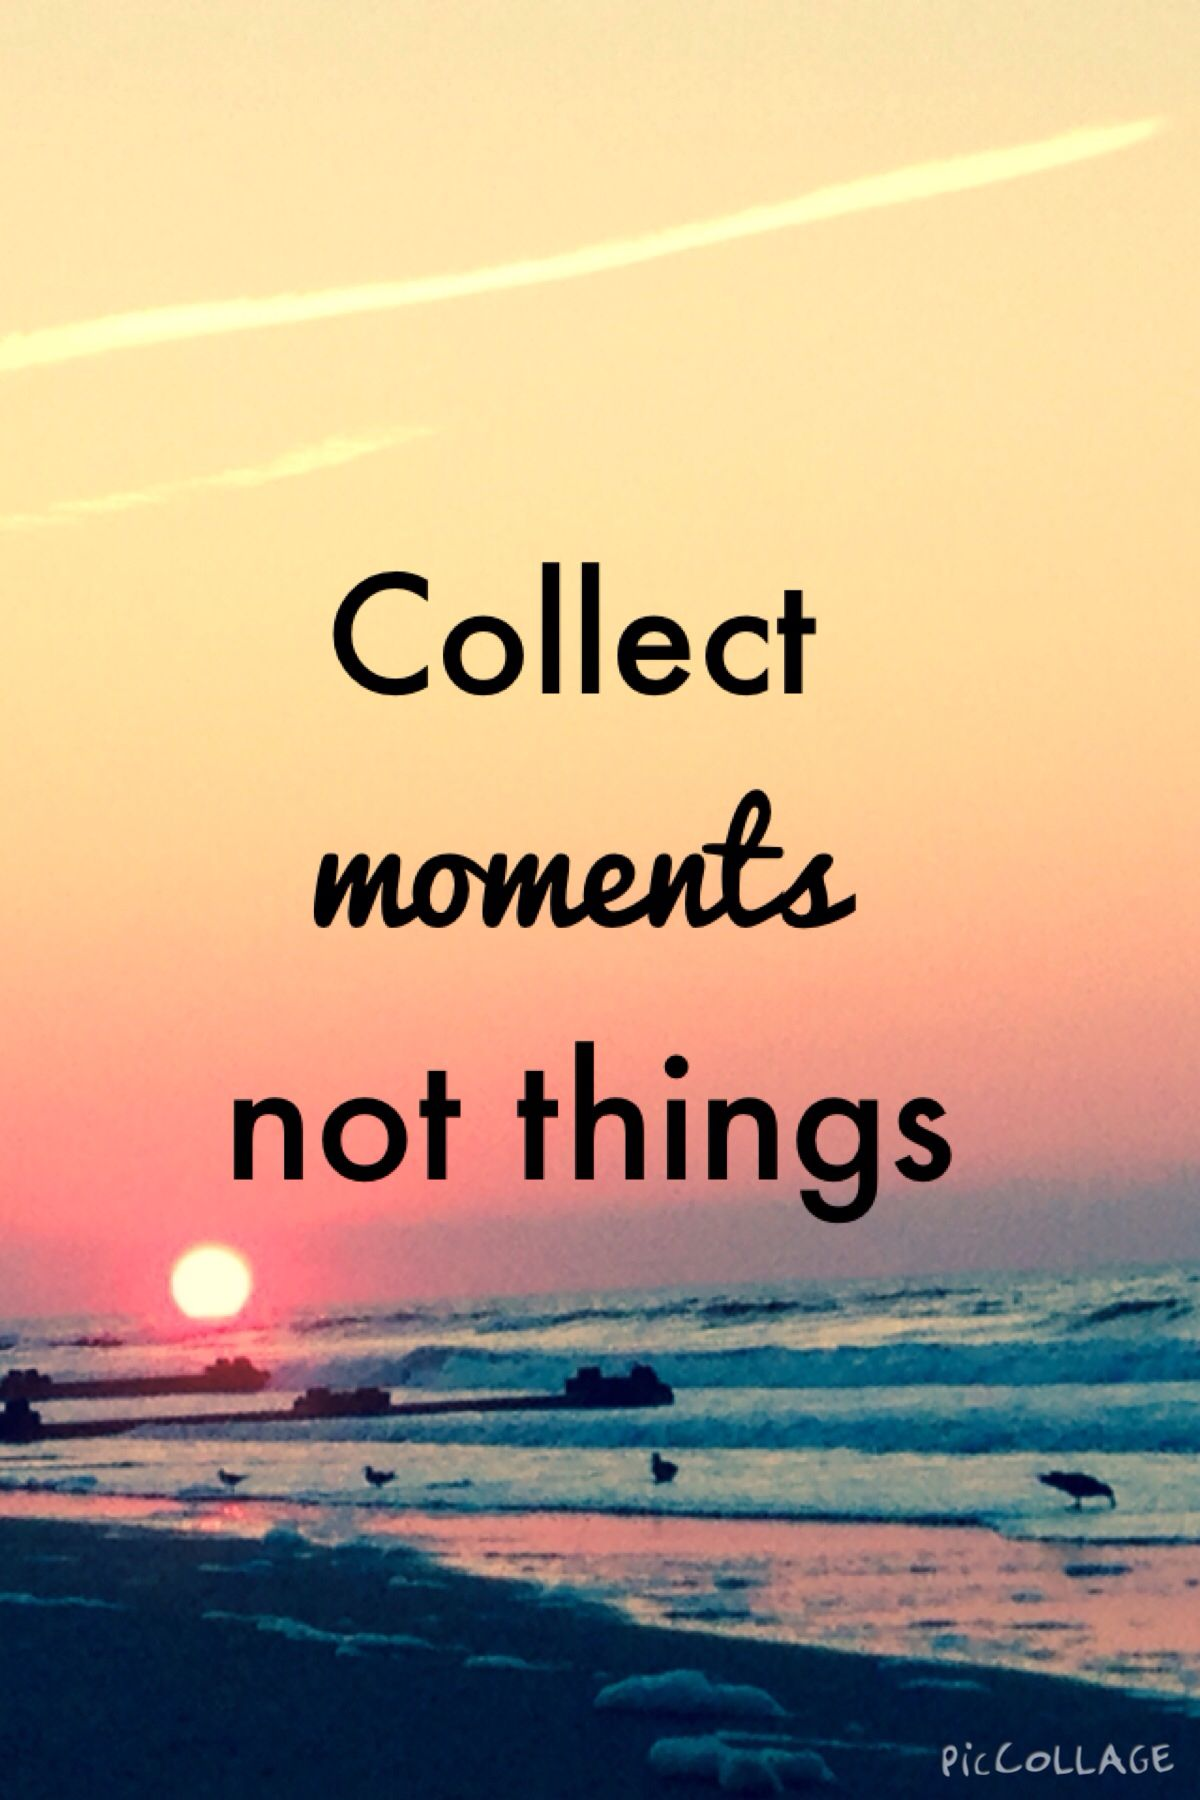 Collect Moments Not Things Quotes Quotes In This Moment Sayings